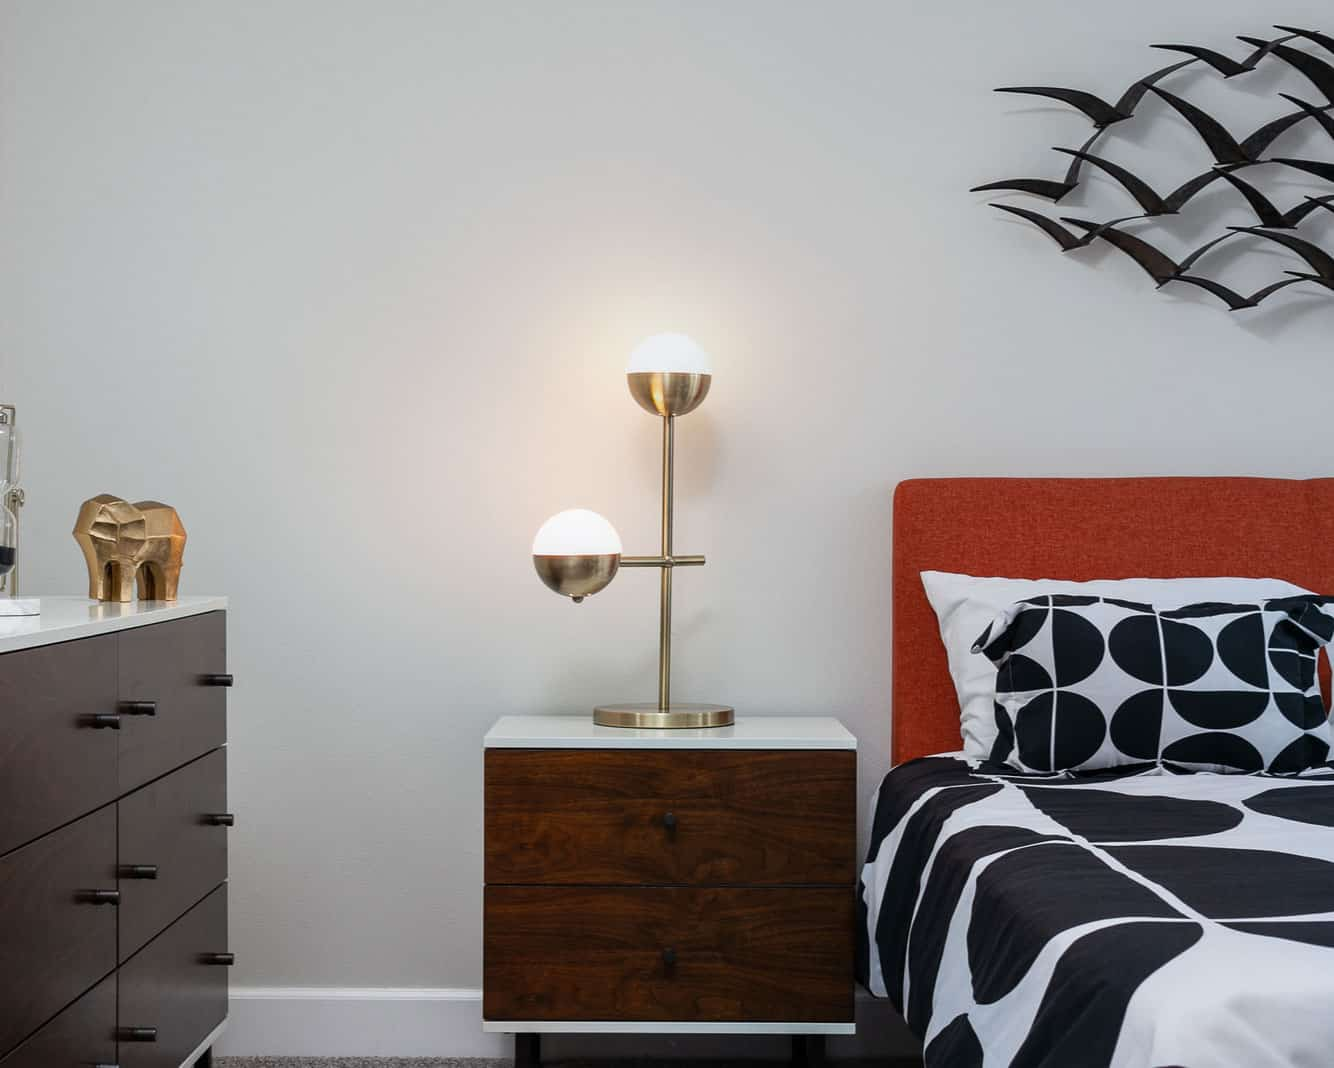 Bedroom with decor, bed, nightstand, and dresser